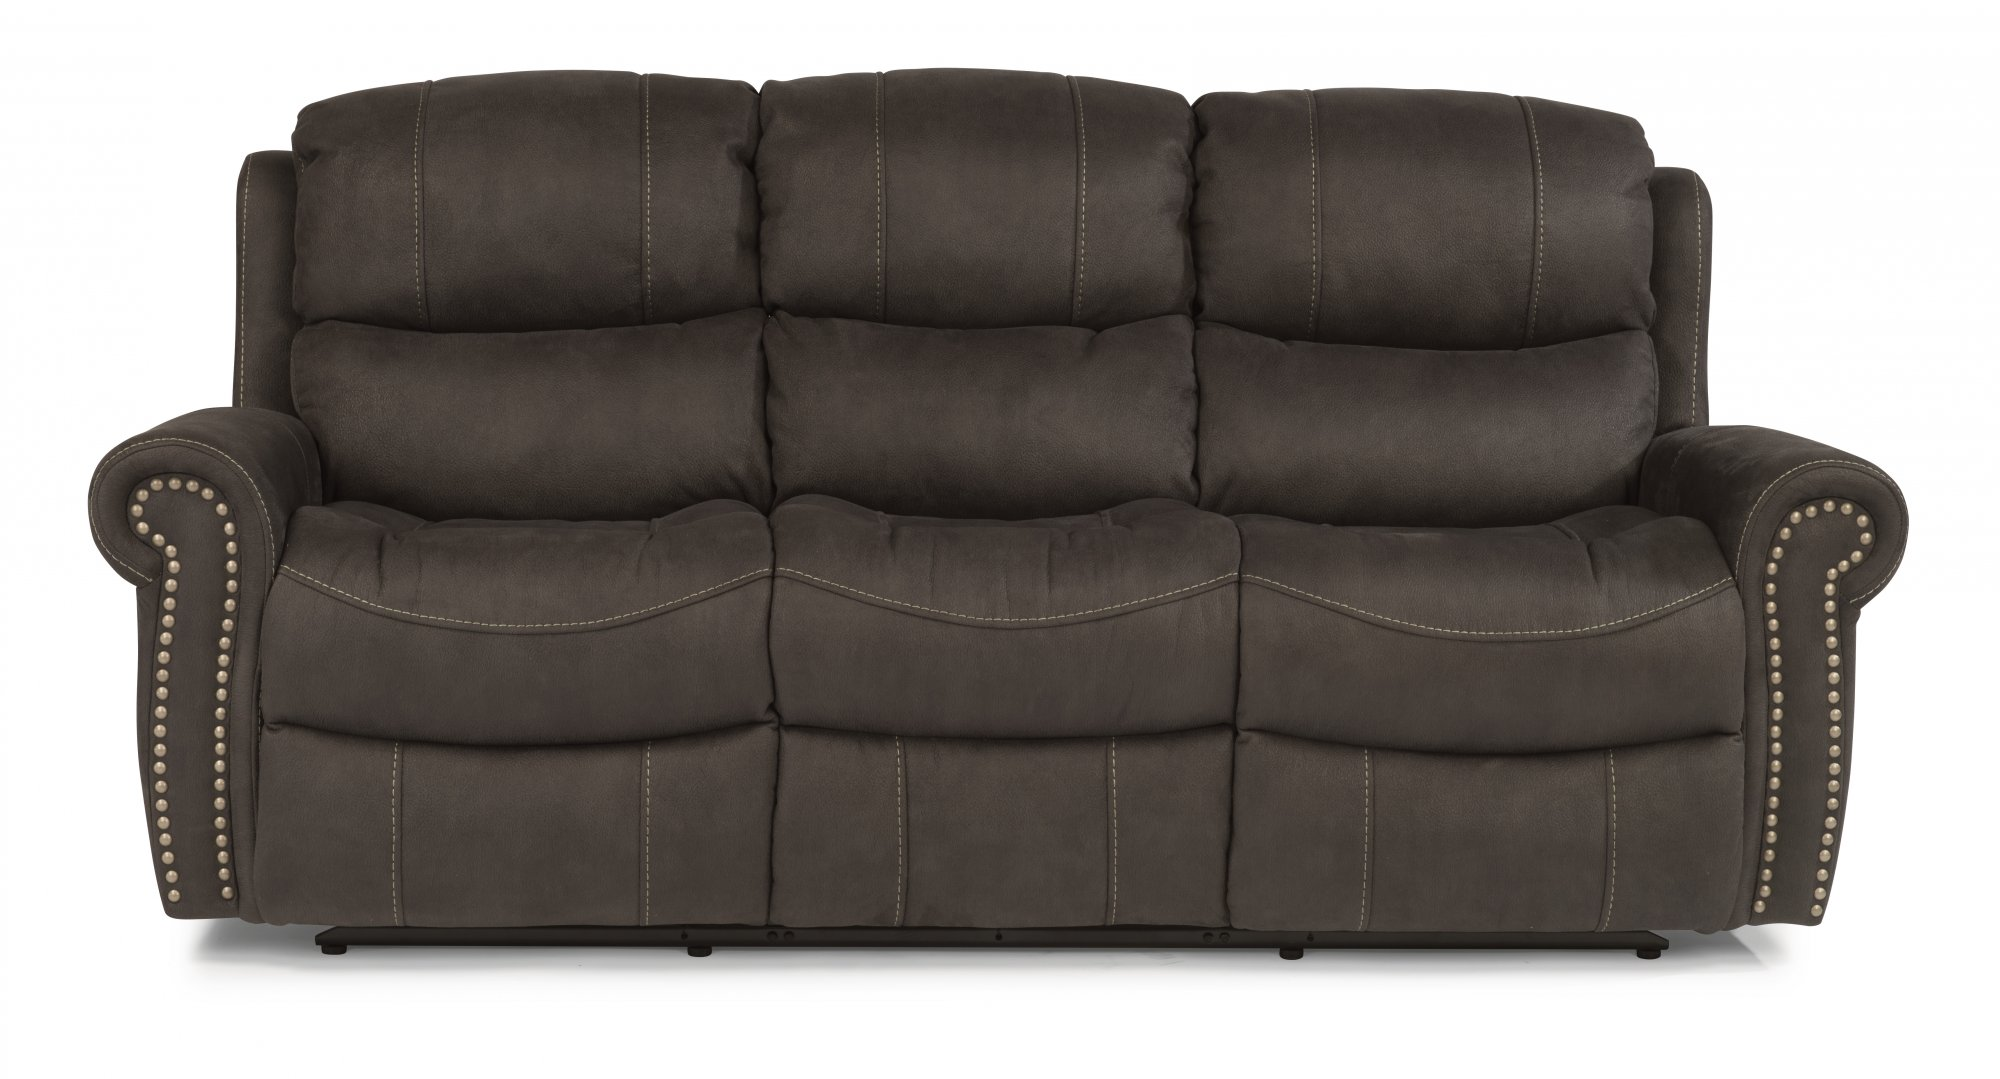 flexsteel double reclining sofa reviews mah jong modular knock off walden fabric share via email download a high resolution image